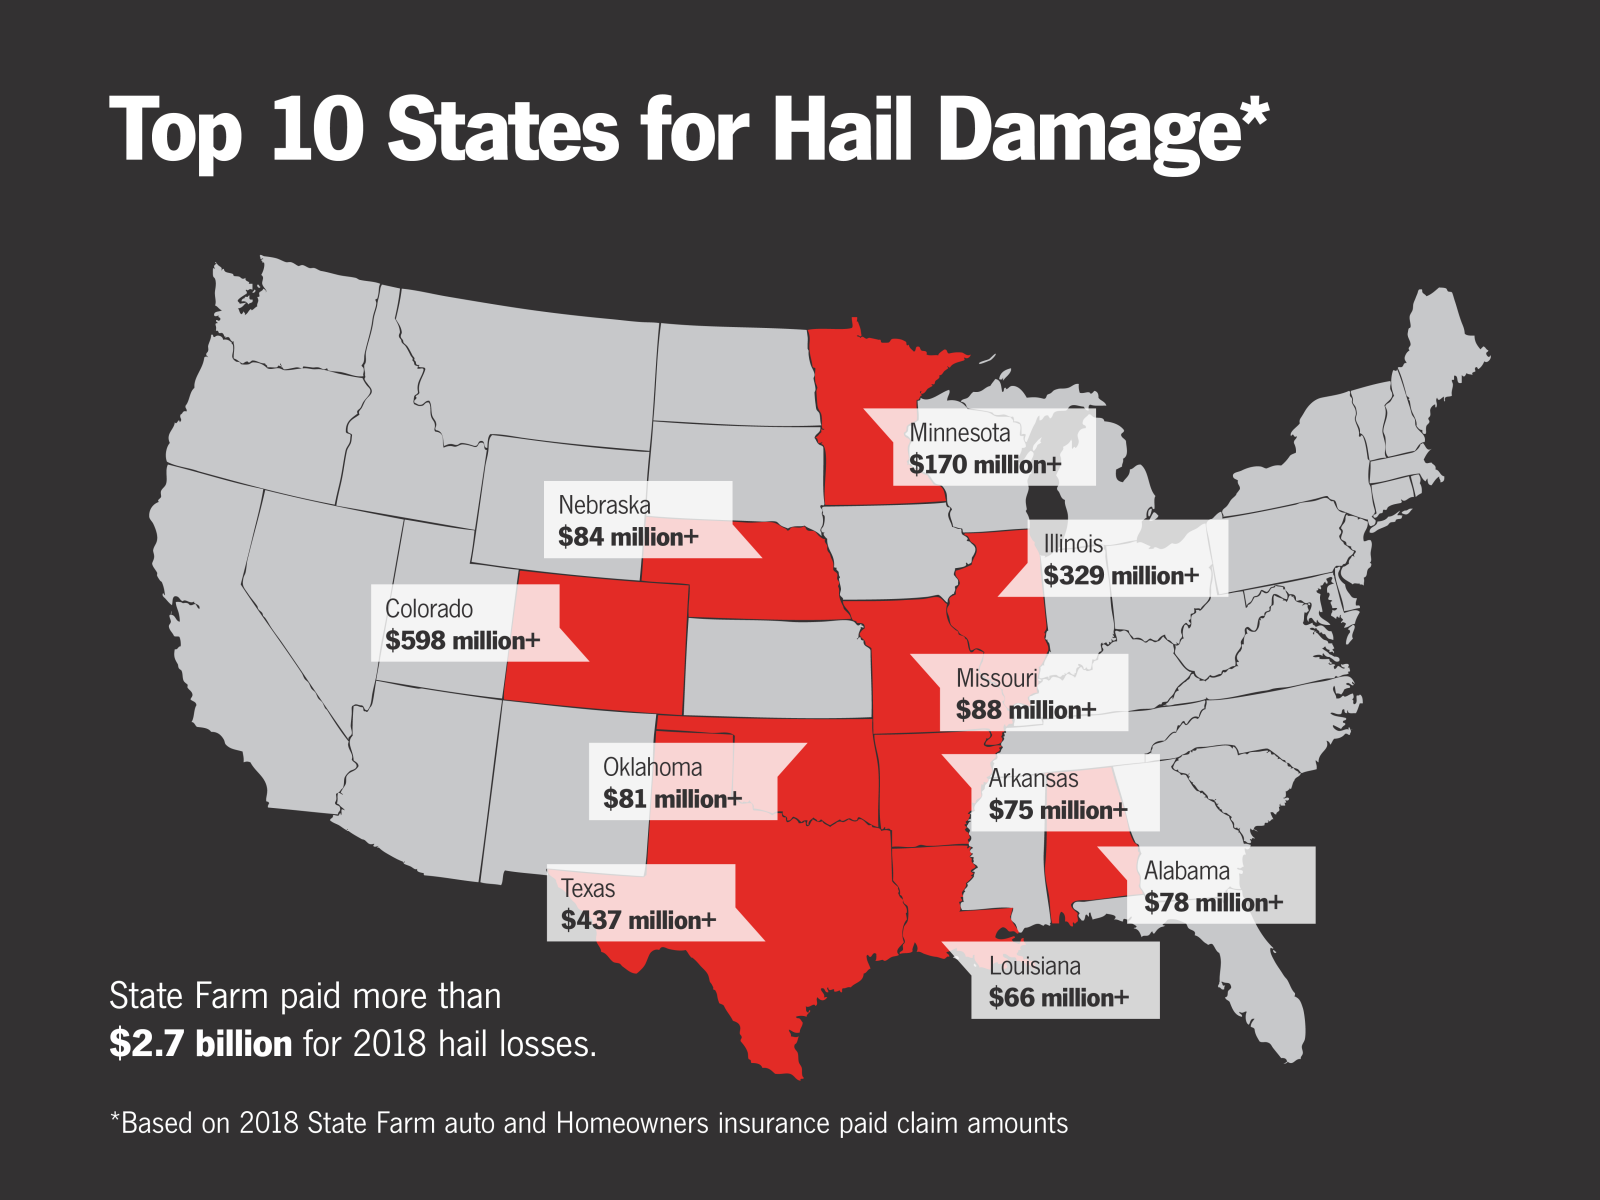 Top 10 states for hail damage claims